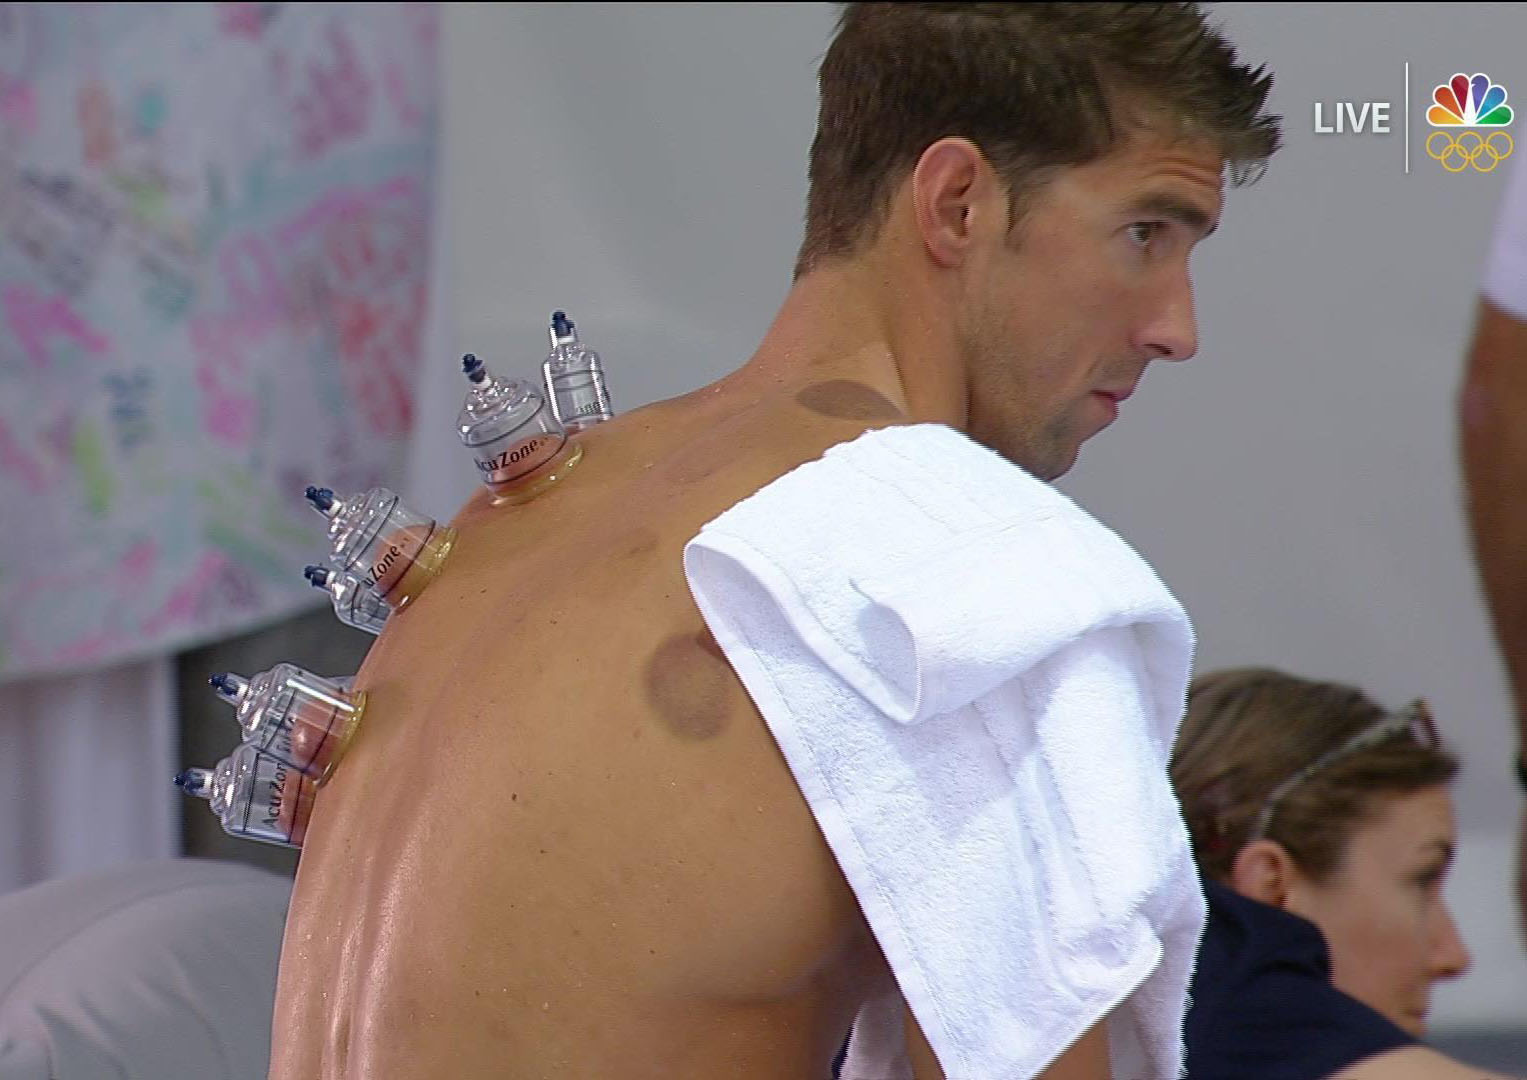 Michael Phelps cupped at 2016 Olympics